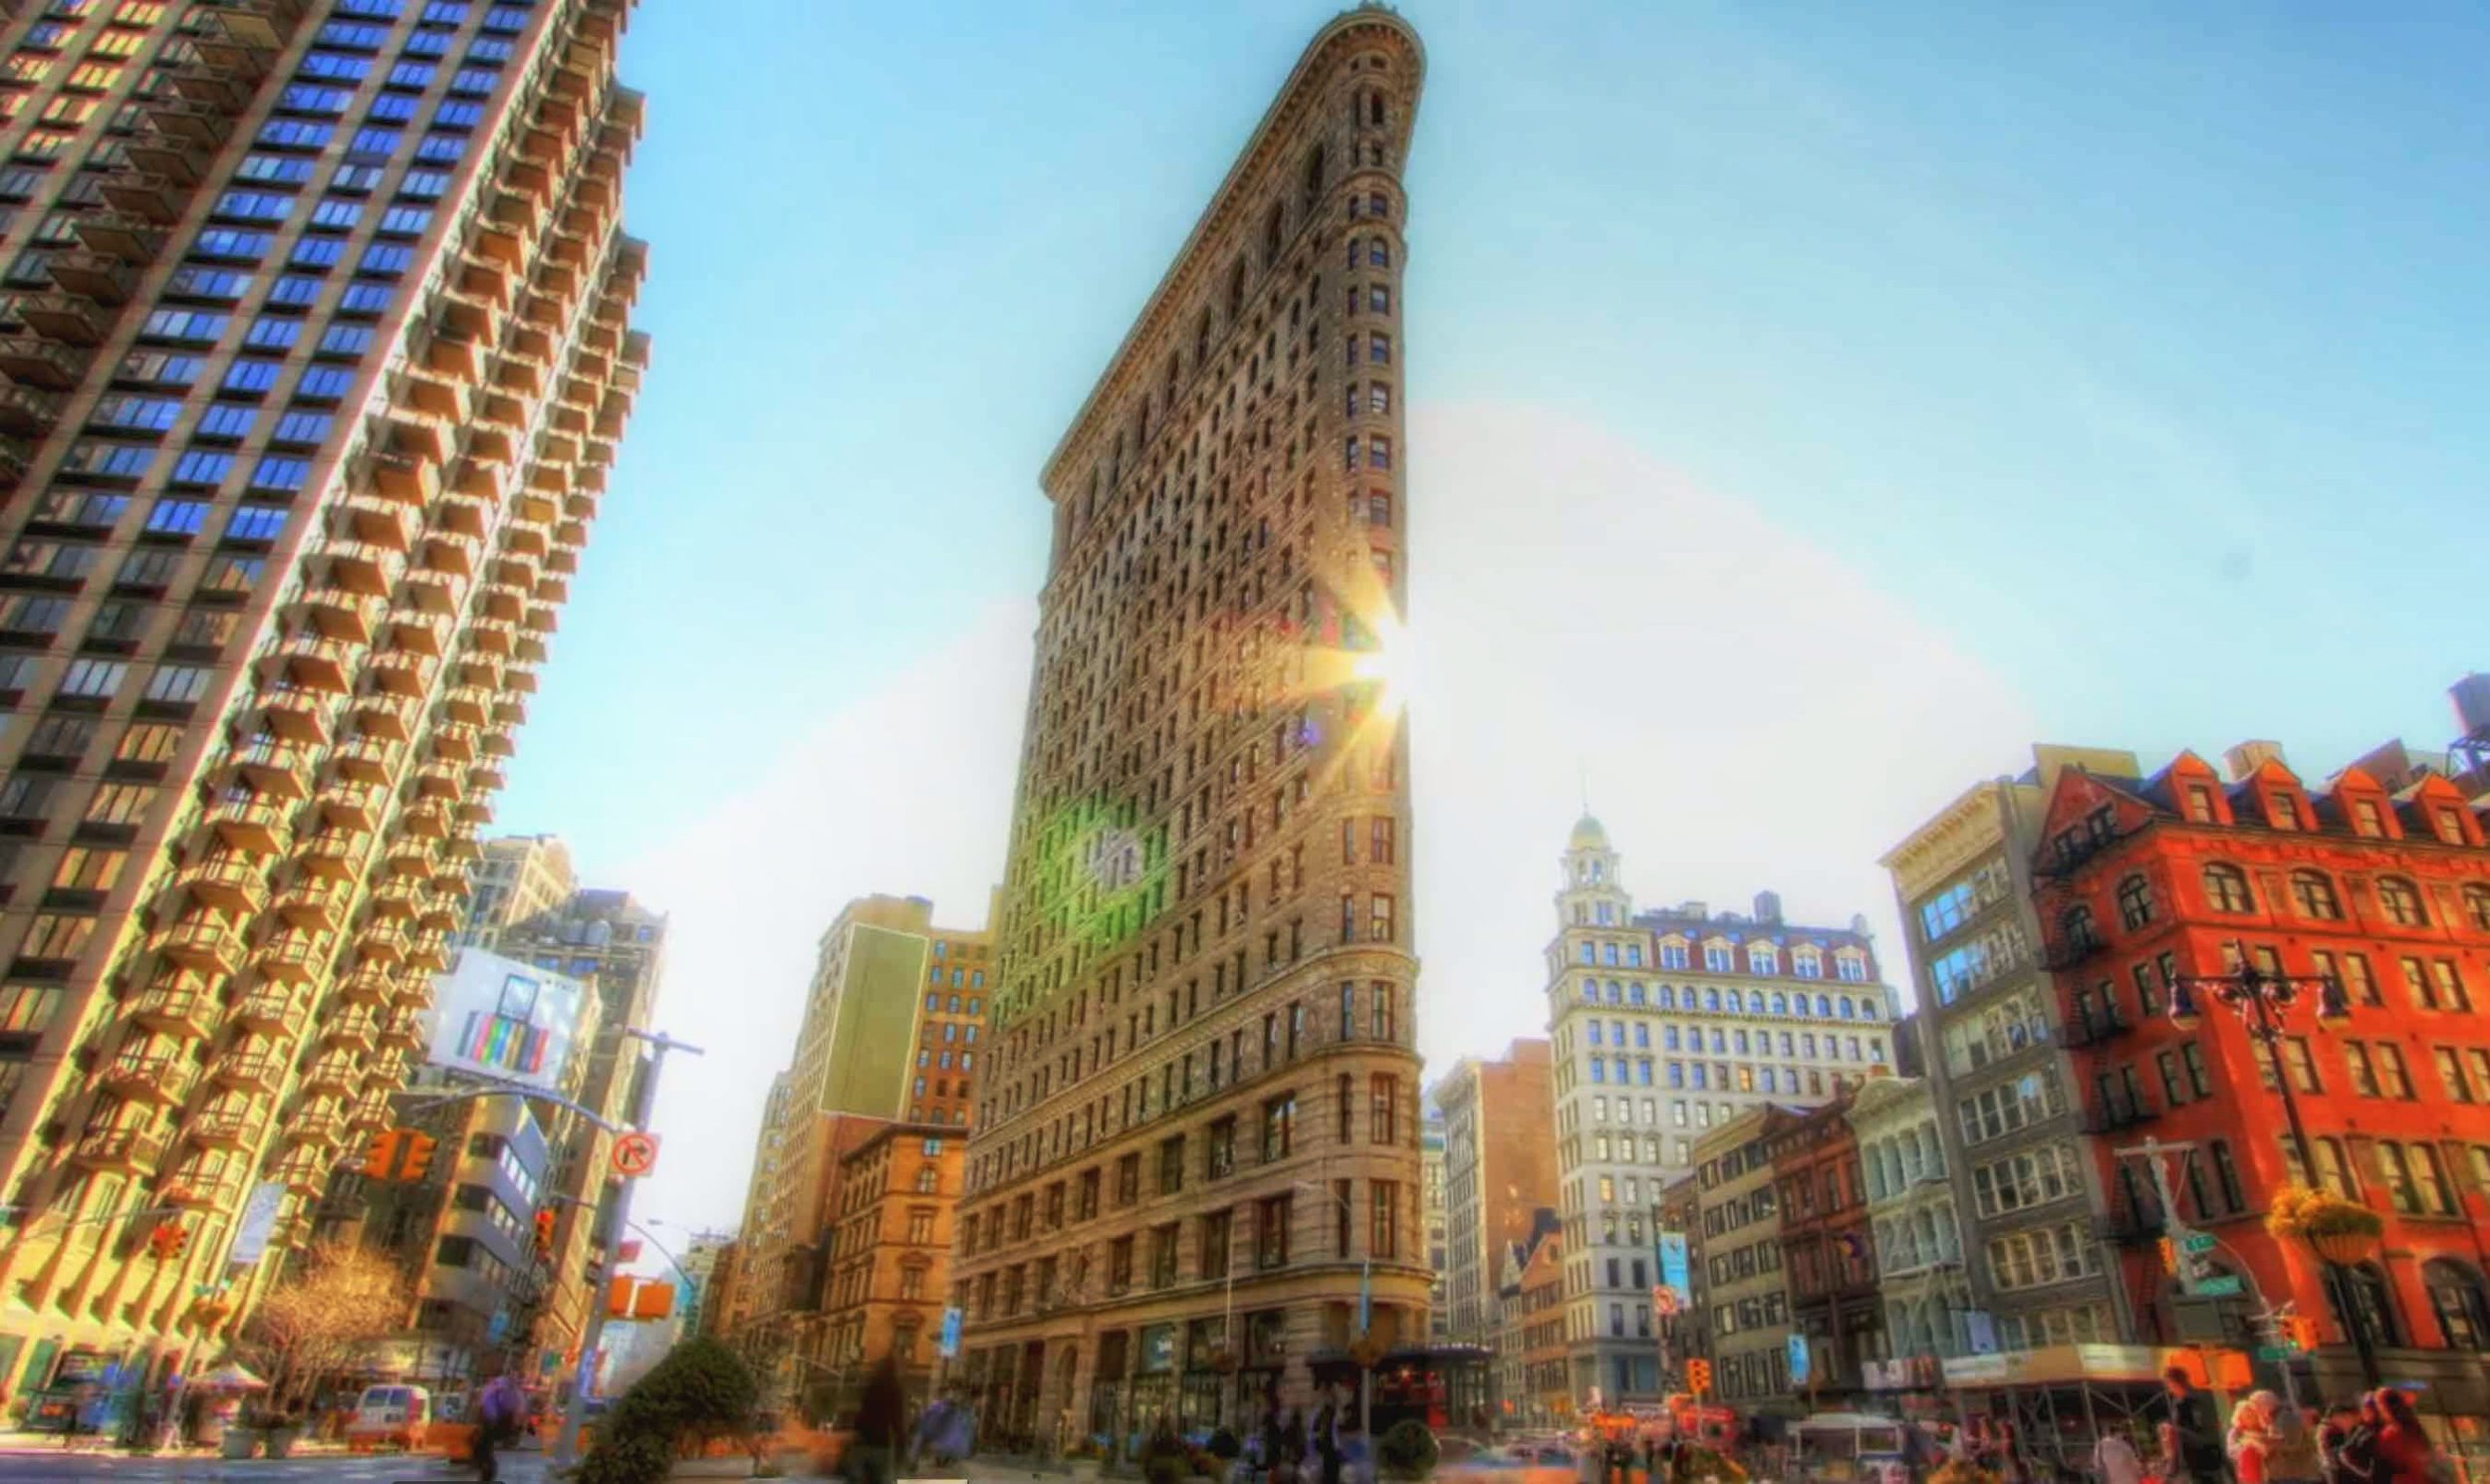 The unique shape of the flatiron Building. Photo  @lucascompan